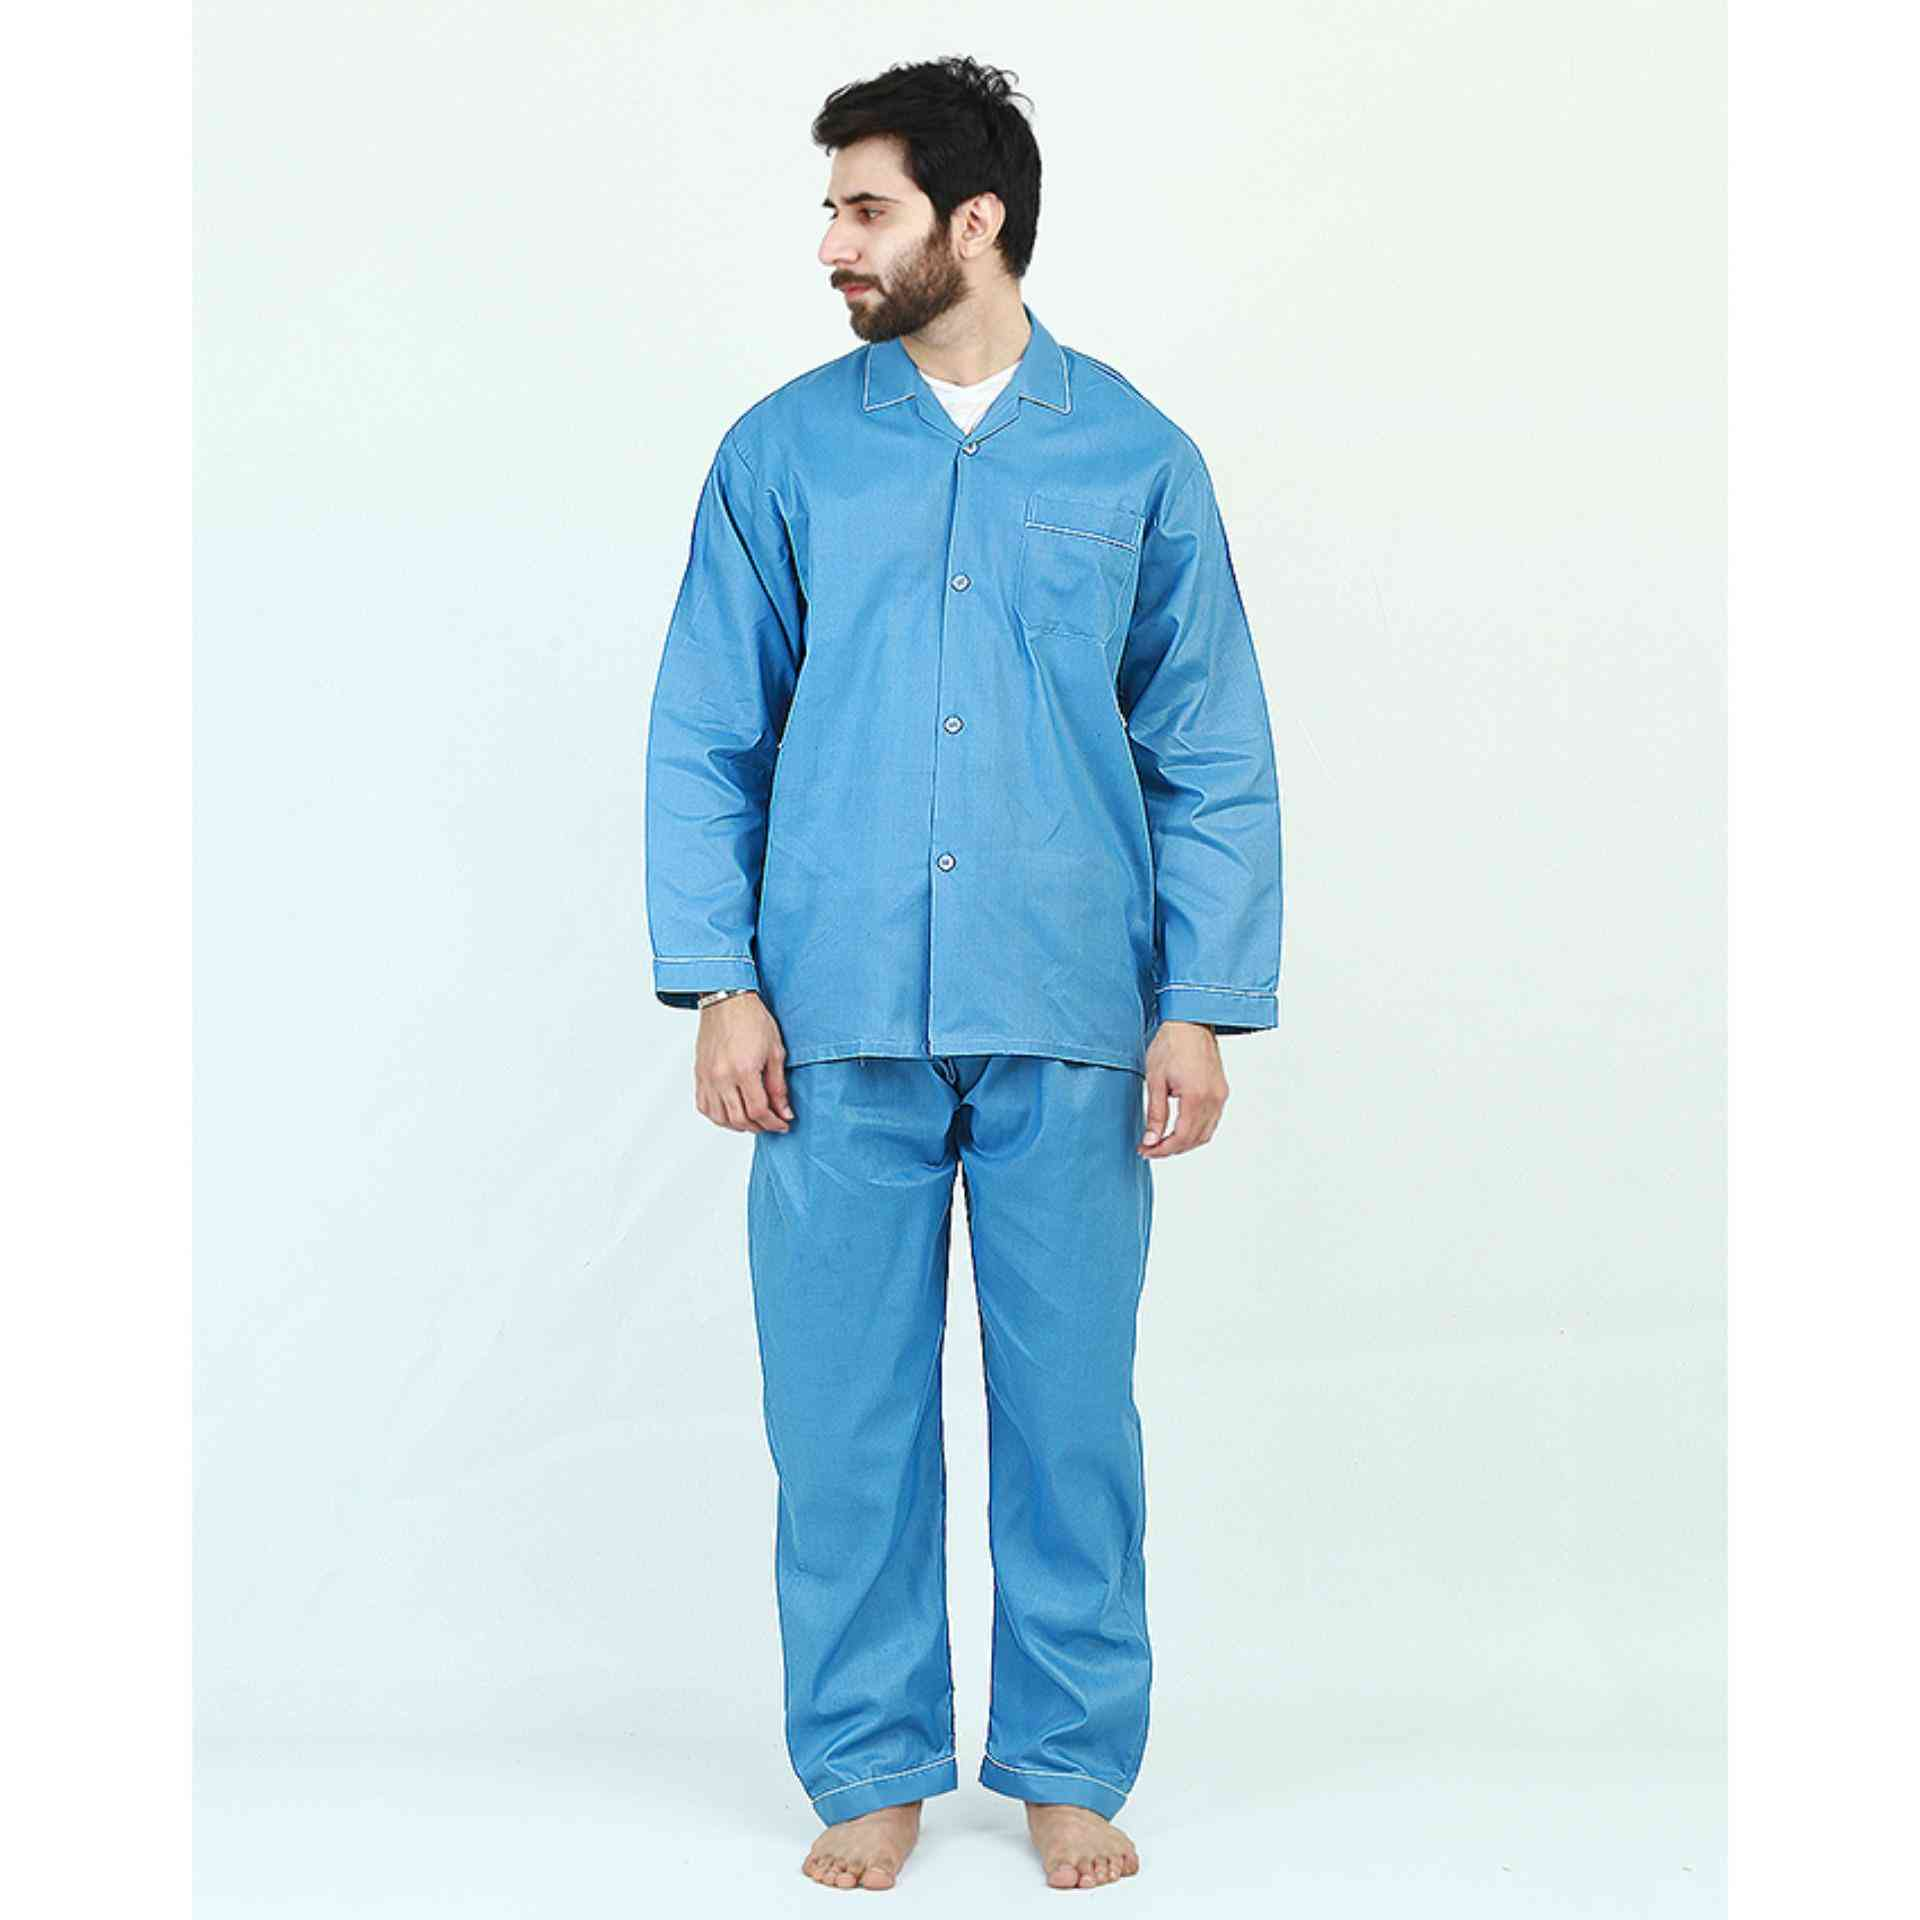 Pack of 2 Cotton Polyester Night Suit (Pajama + Shirt) for Men - Blue